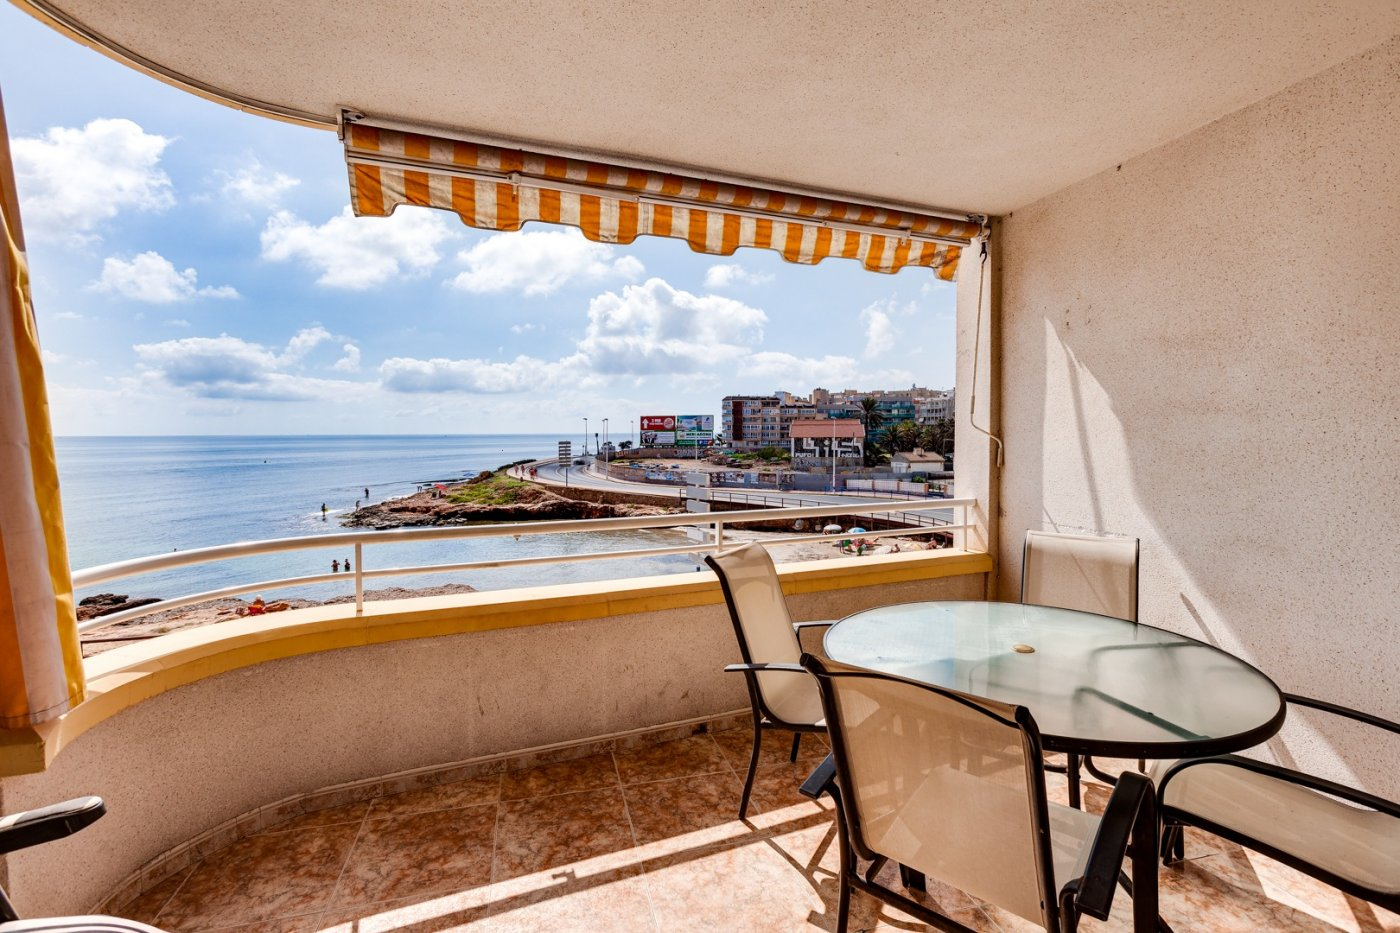 Beach front line apartment for sale with frontal sea views at Curva Palangre in Torrevieja.